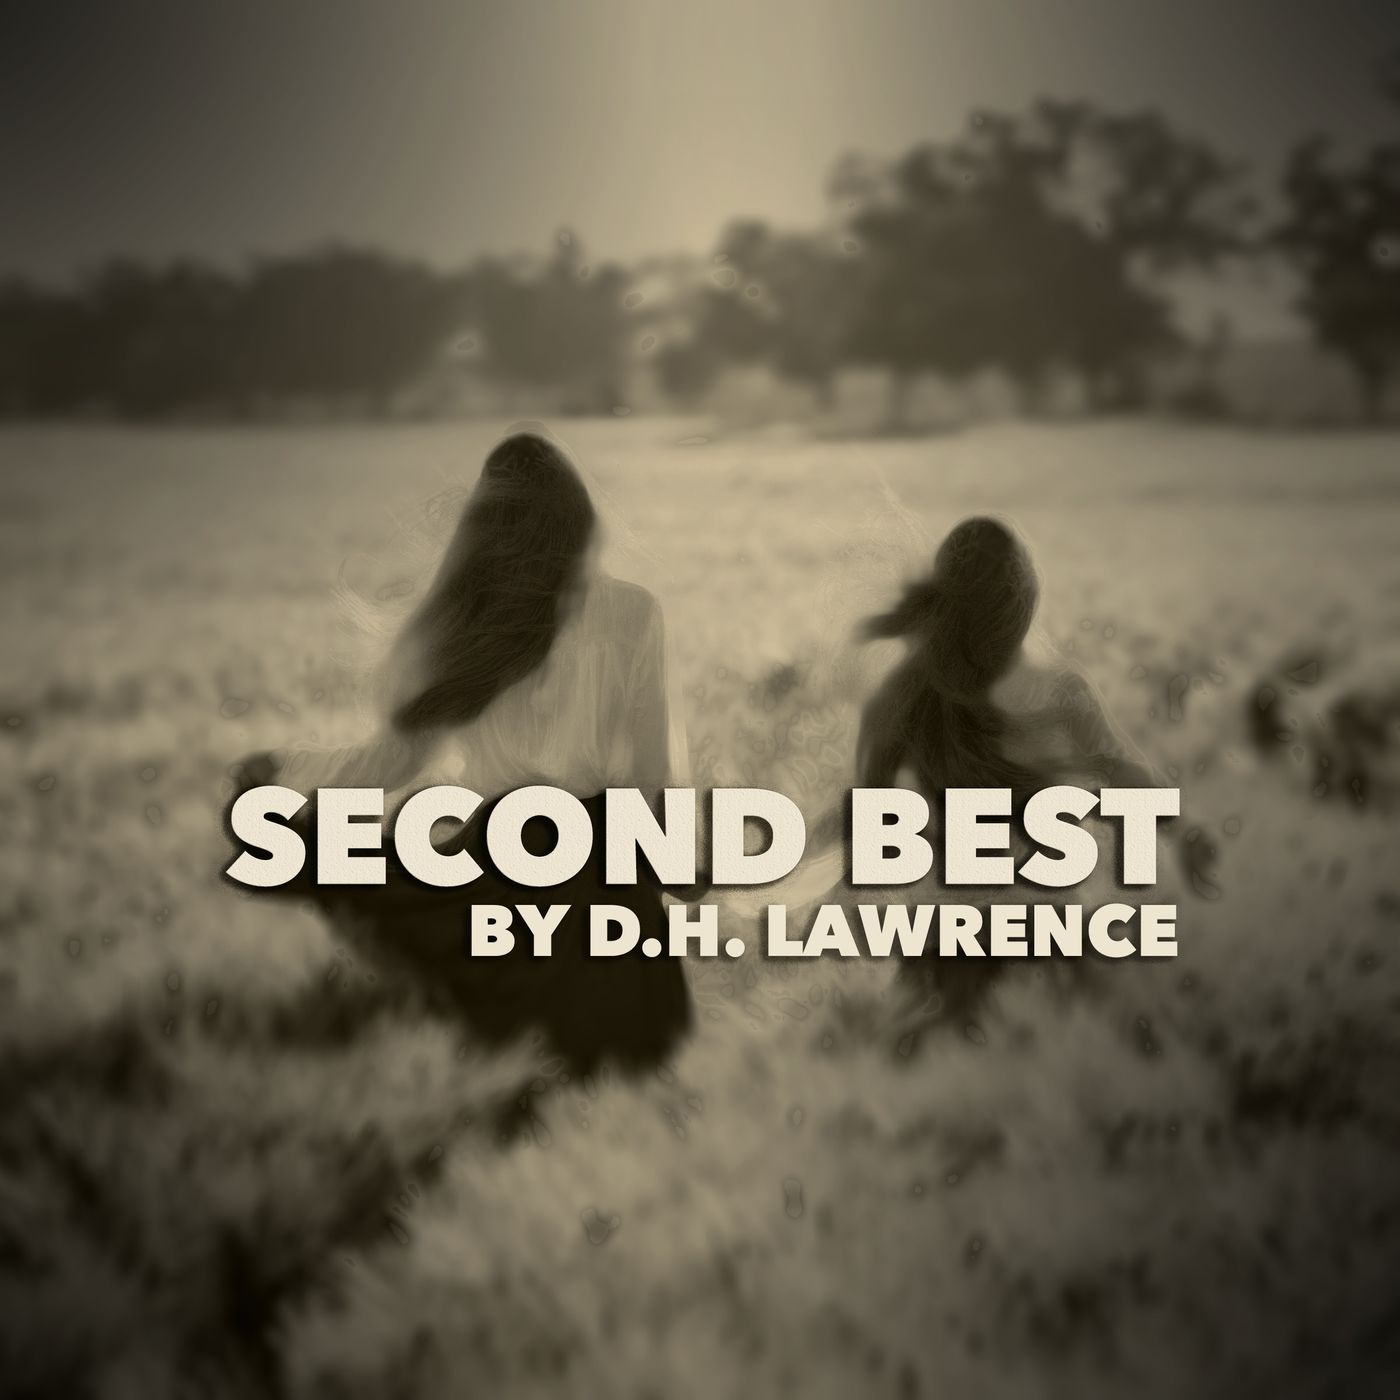 Second Best by D.H. Lawrence